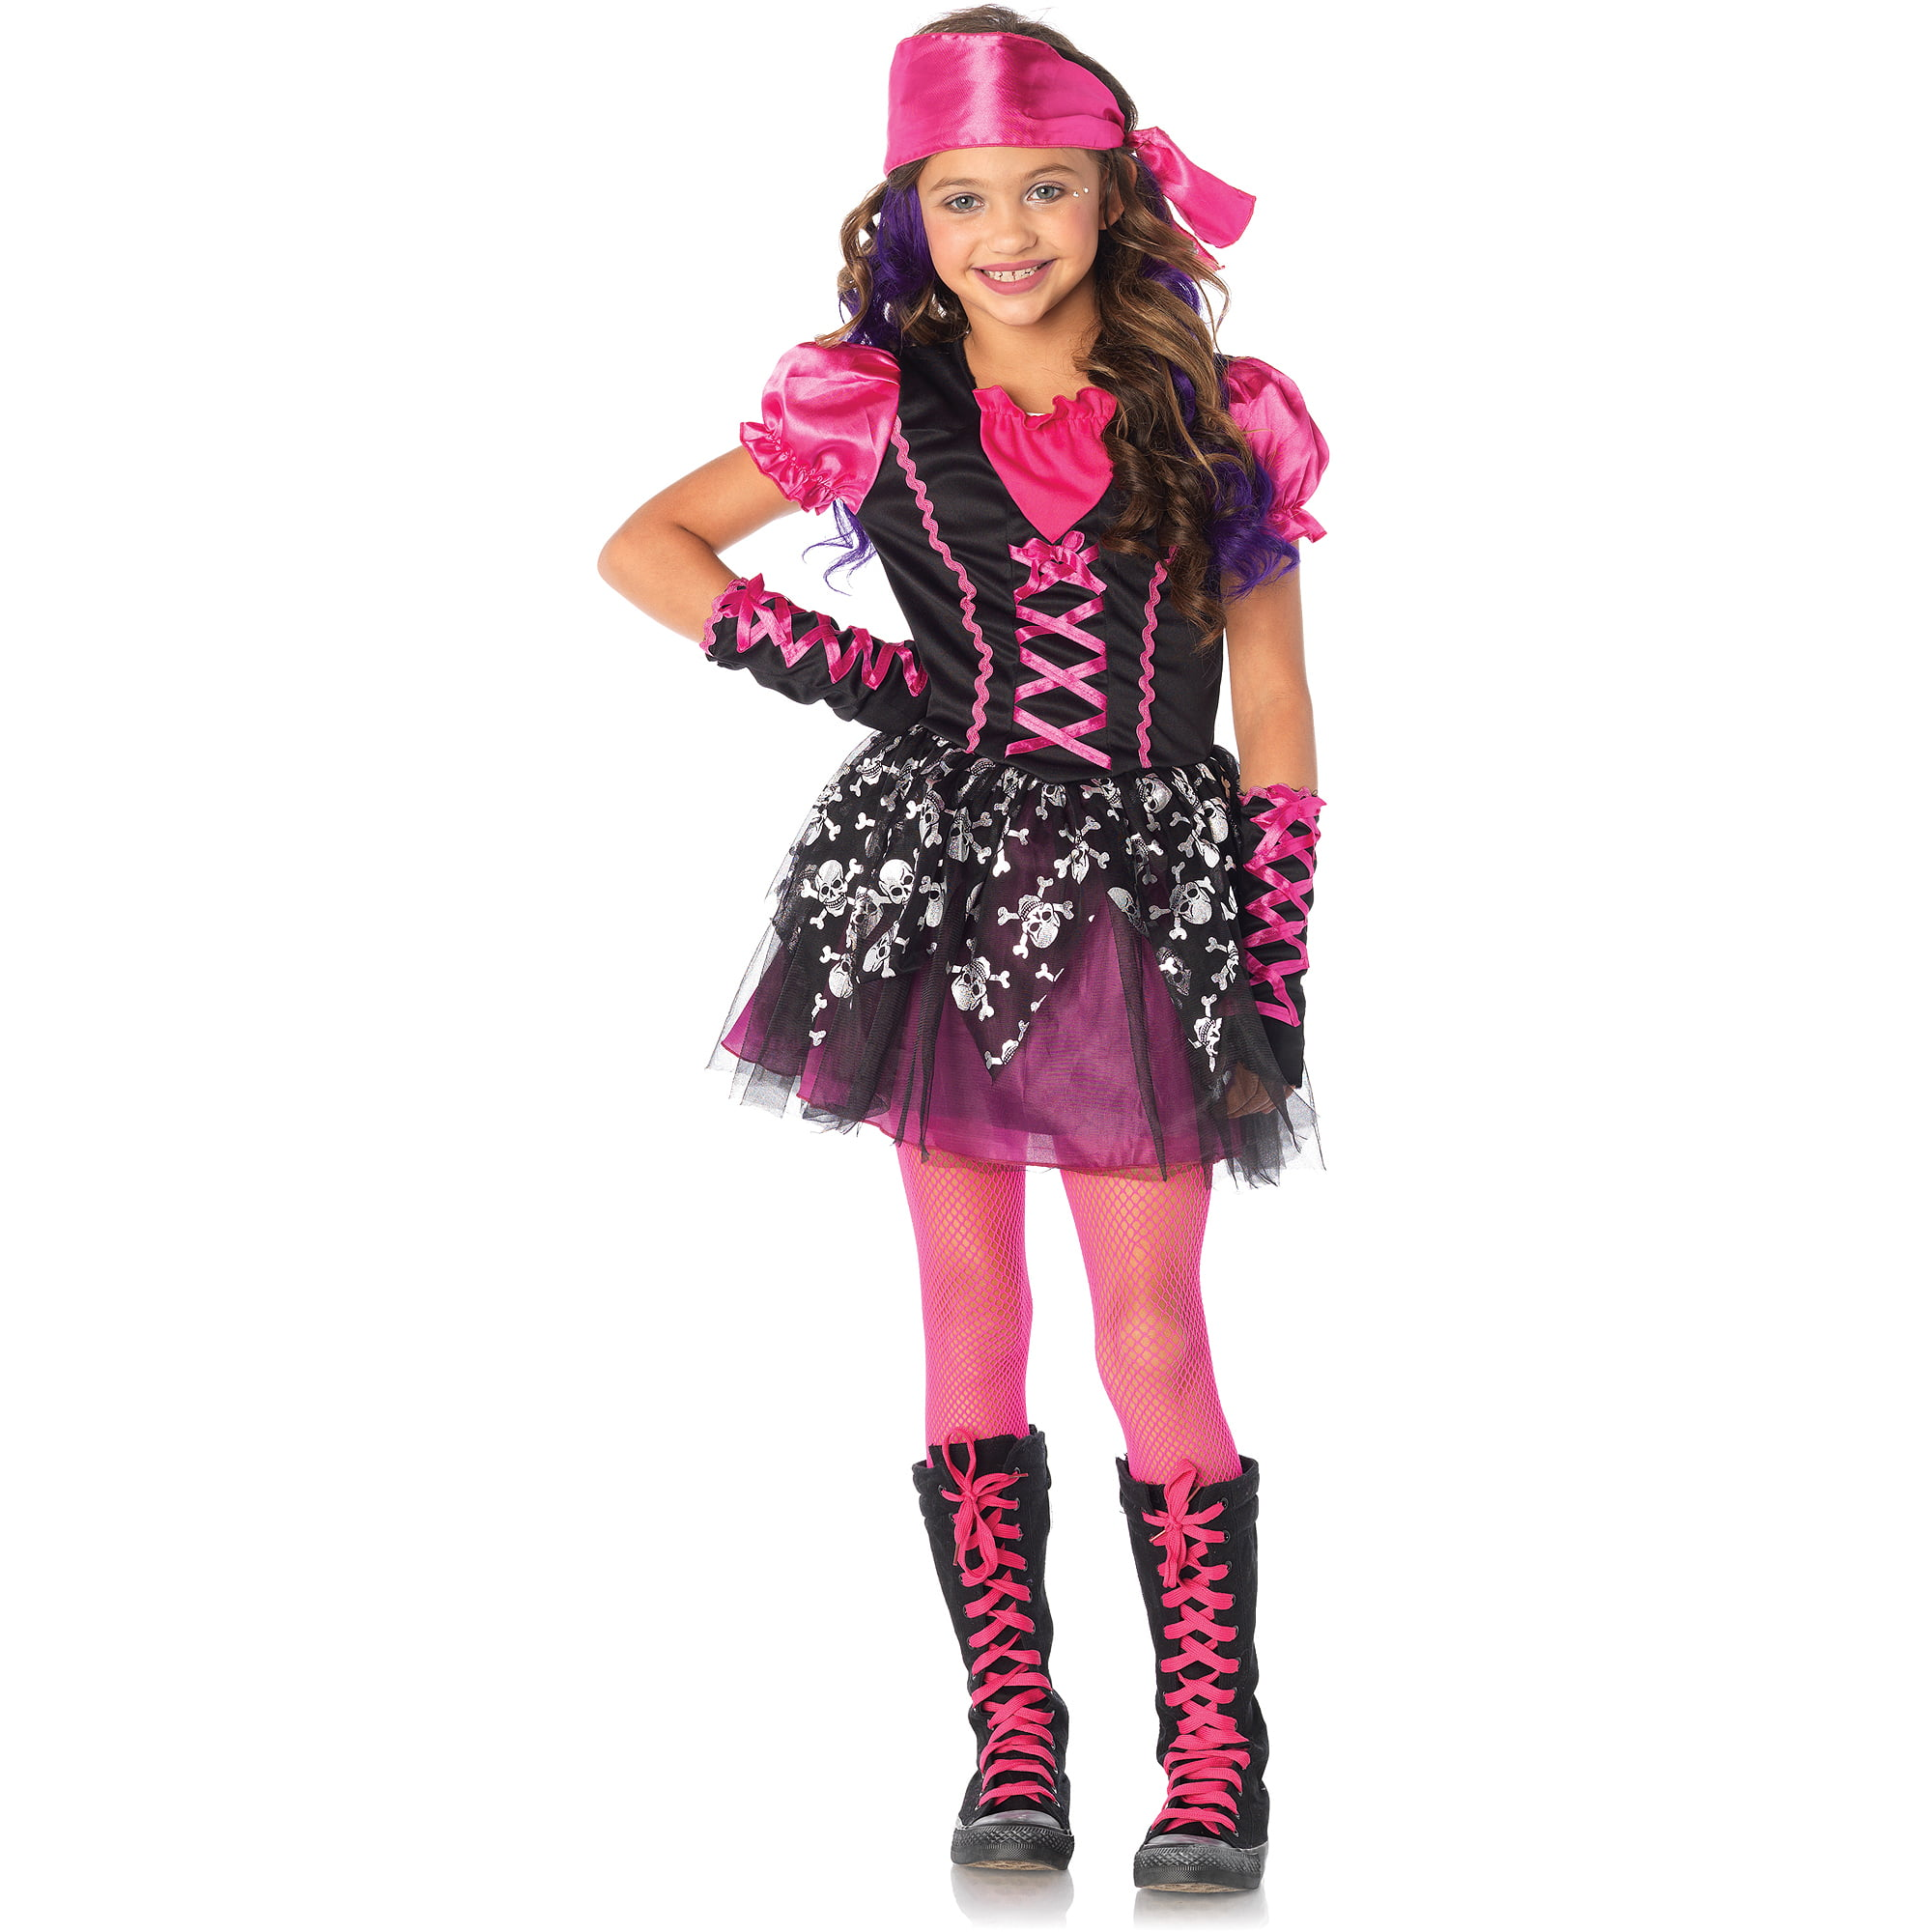 sc 1 st  Walmart & Pretty Pirate Child Halloween Costume - Walmart.com